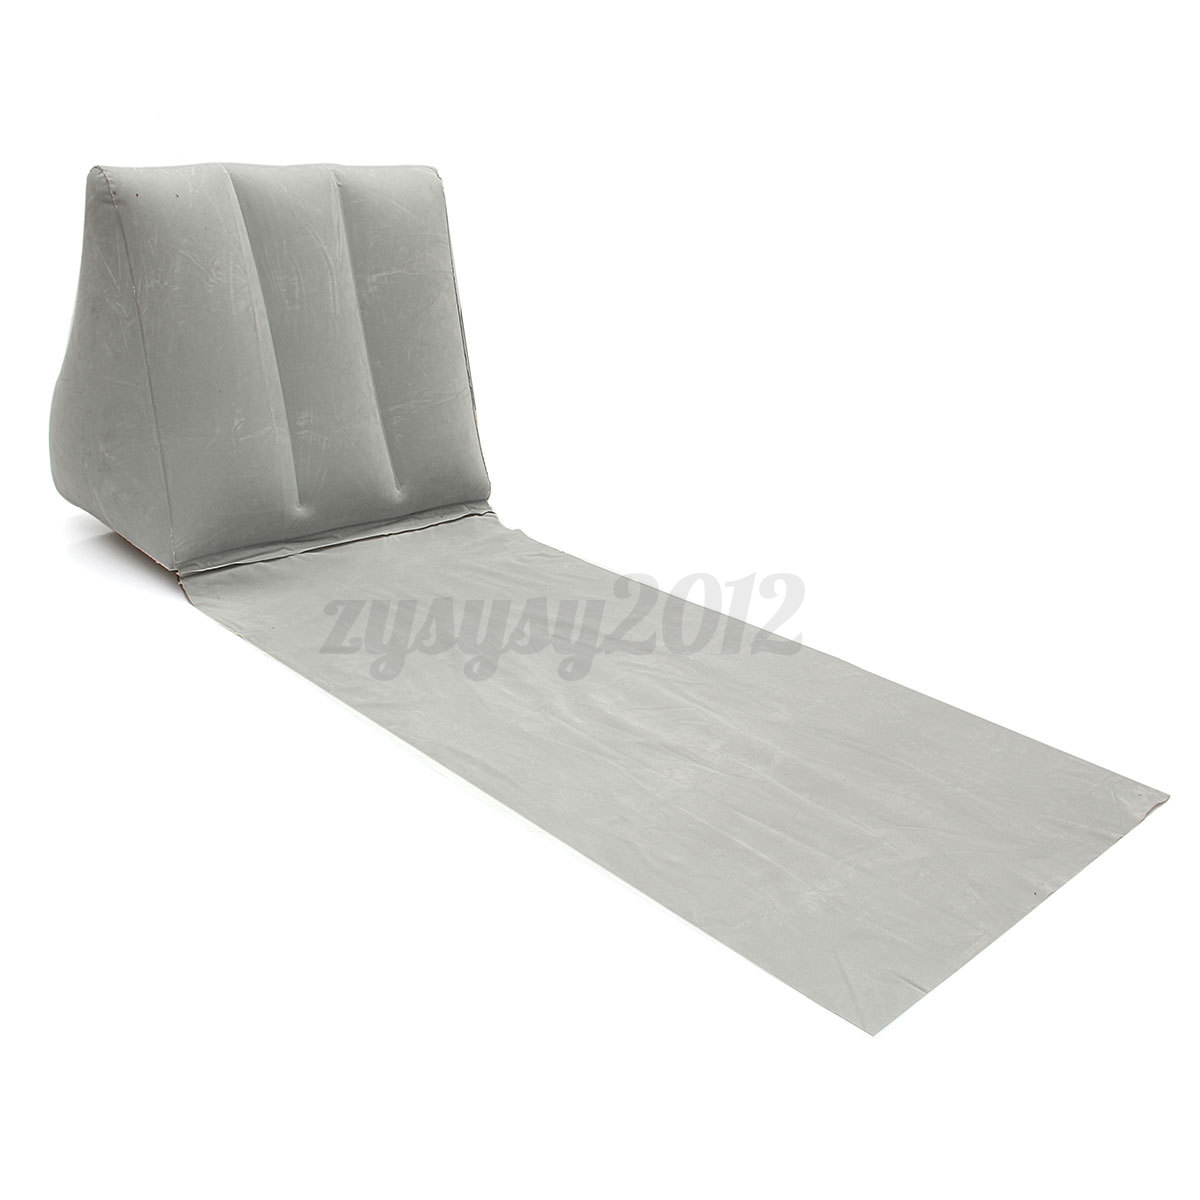 Camping matelas gonflable air plage transat oreiller pad for Chaise gonflable